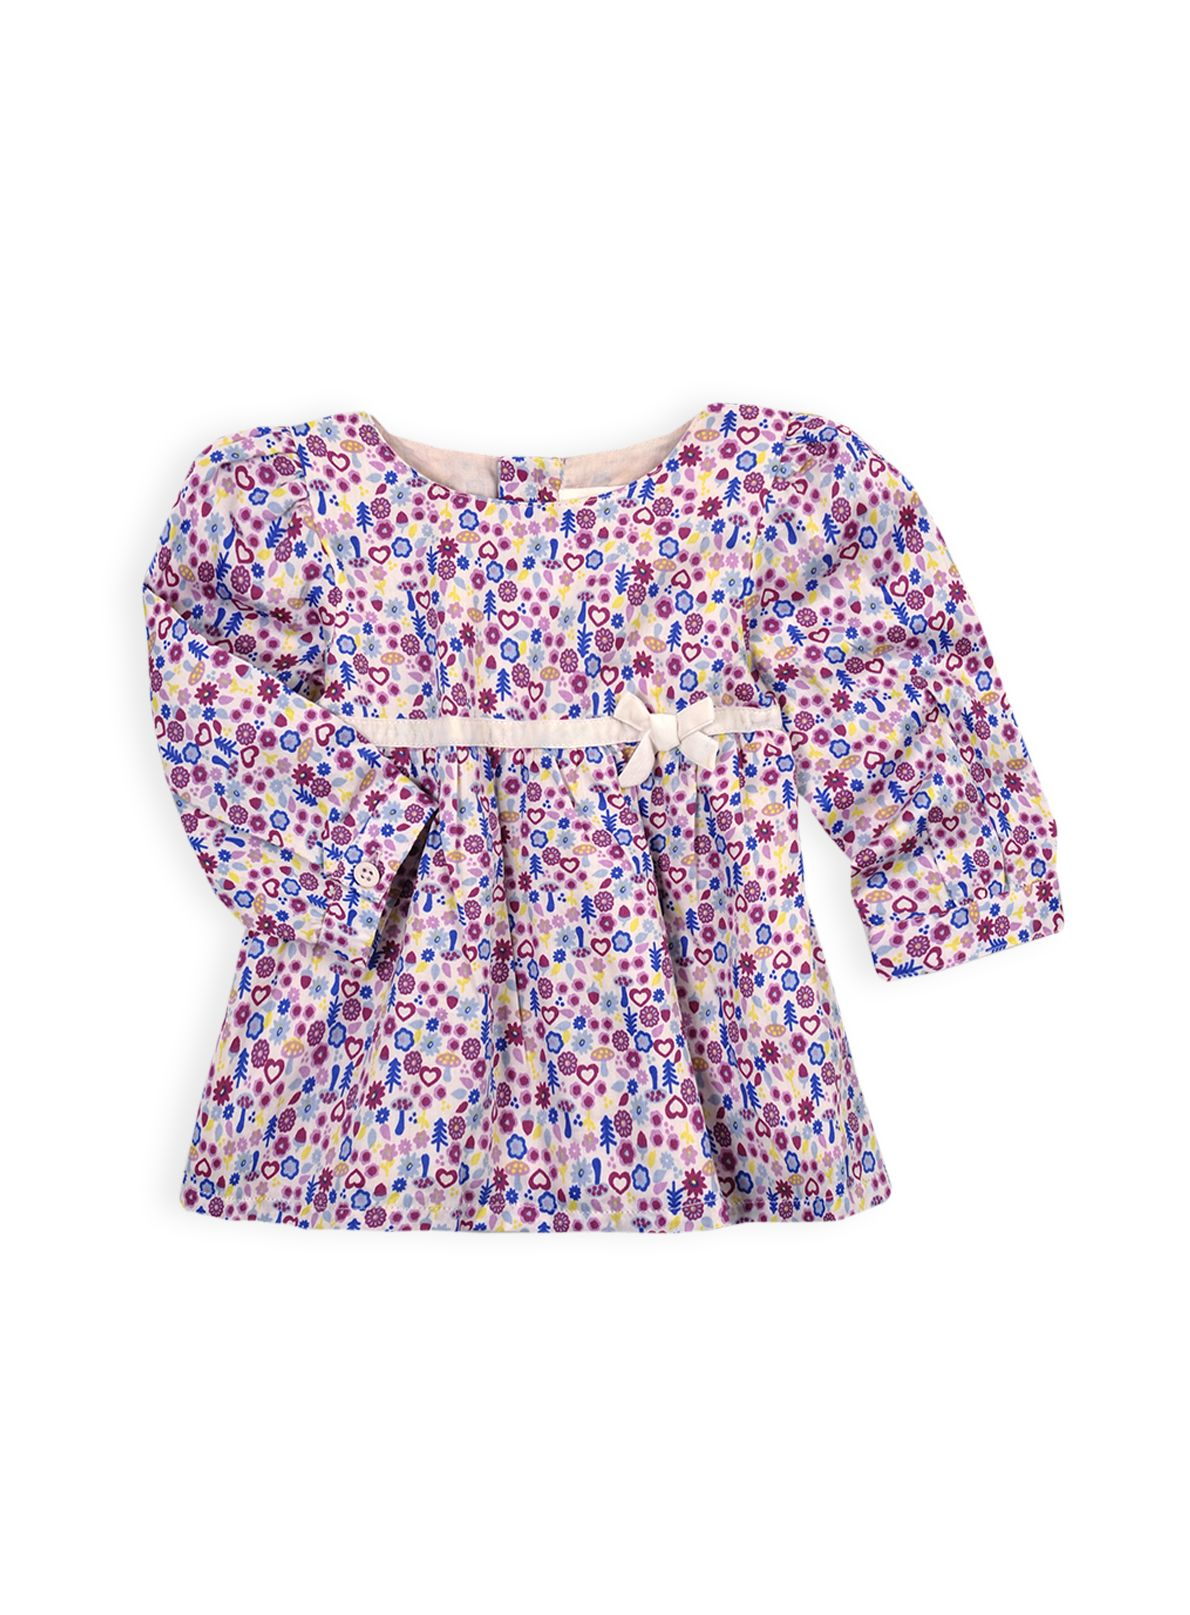 Girls velvet bow top